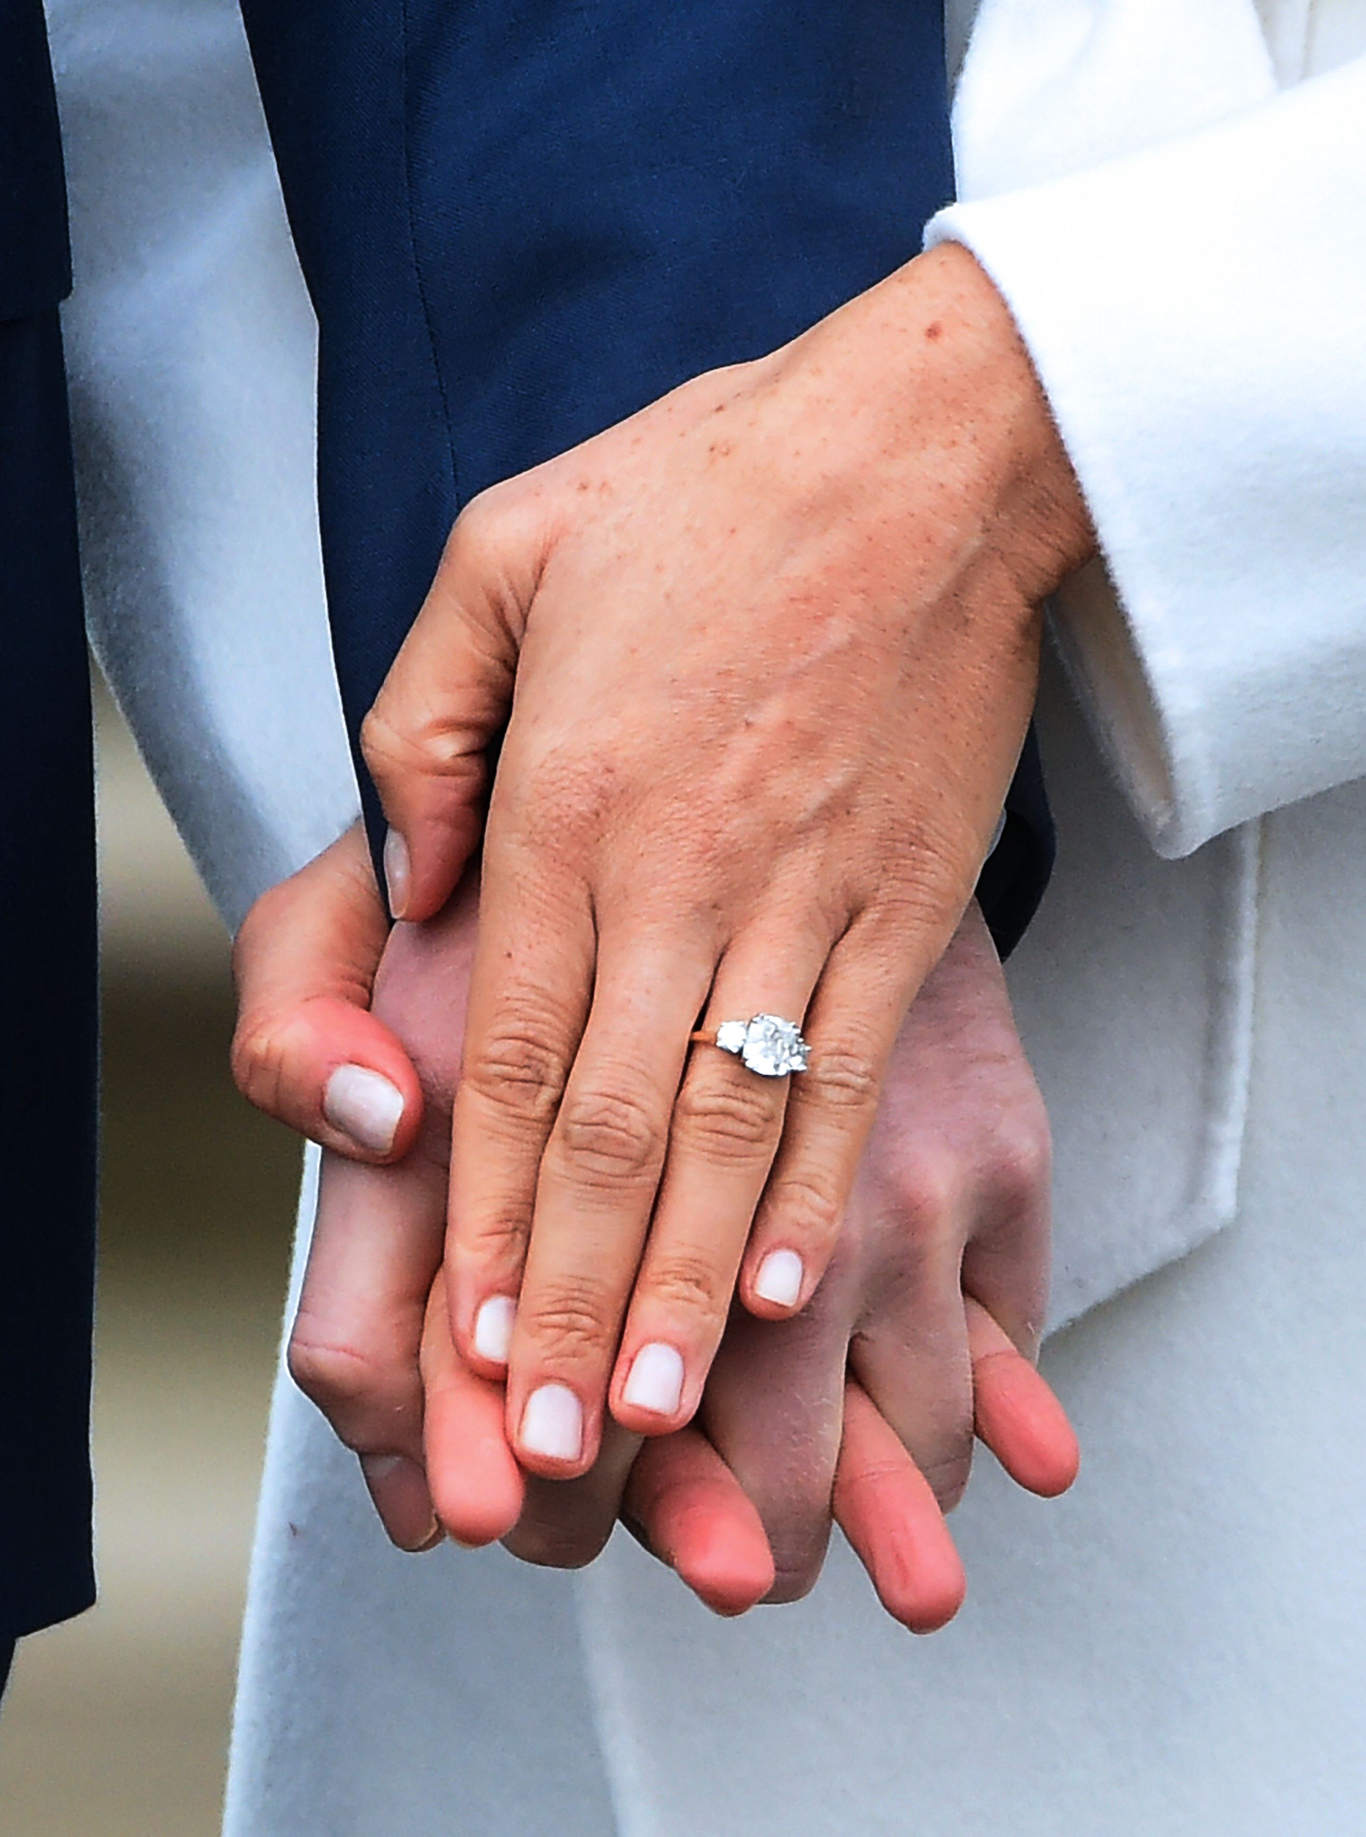 Prince Harry and Meghan MarklePrince Harry and Meghan Markle engaged, London, United Kingdom - 27 Nov 2017Britain's Prince Harry poses with his fiancee, US actress Meghan Markle during a photocall after announcing their engagement in the Sunken Garden at Kensington Palace in London, Britain, 27 November 2017. Clarence House said in a statement that the couple's wedding ceremony will take place in spring 2018.